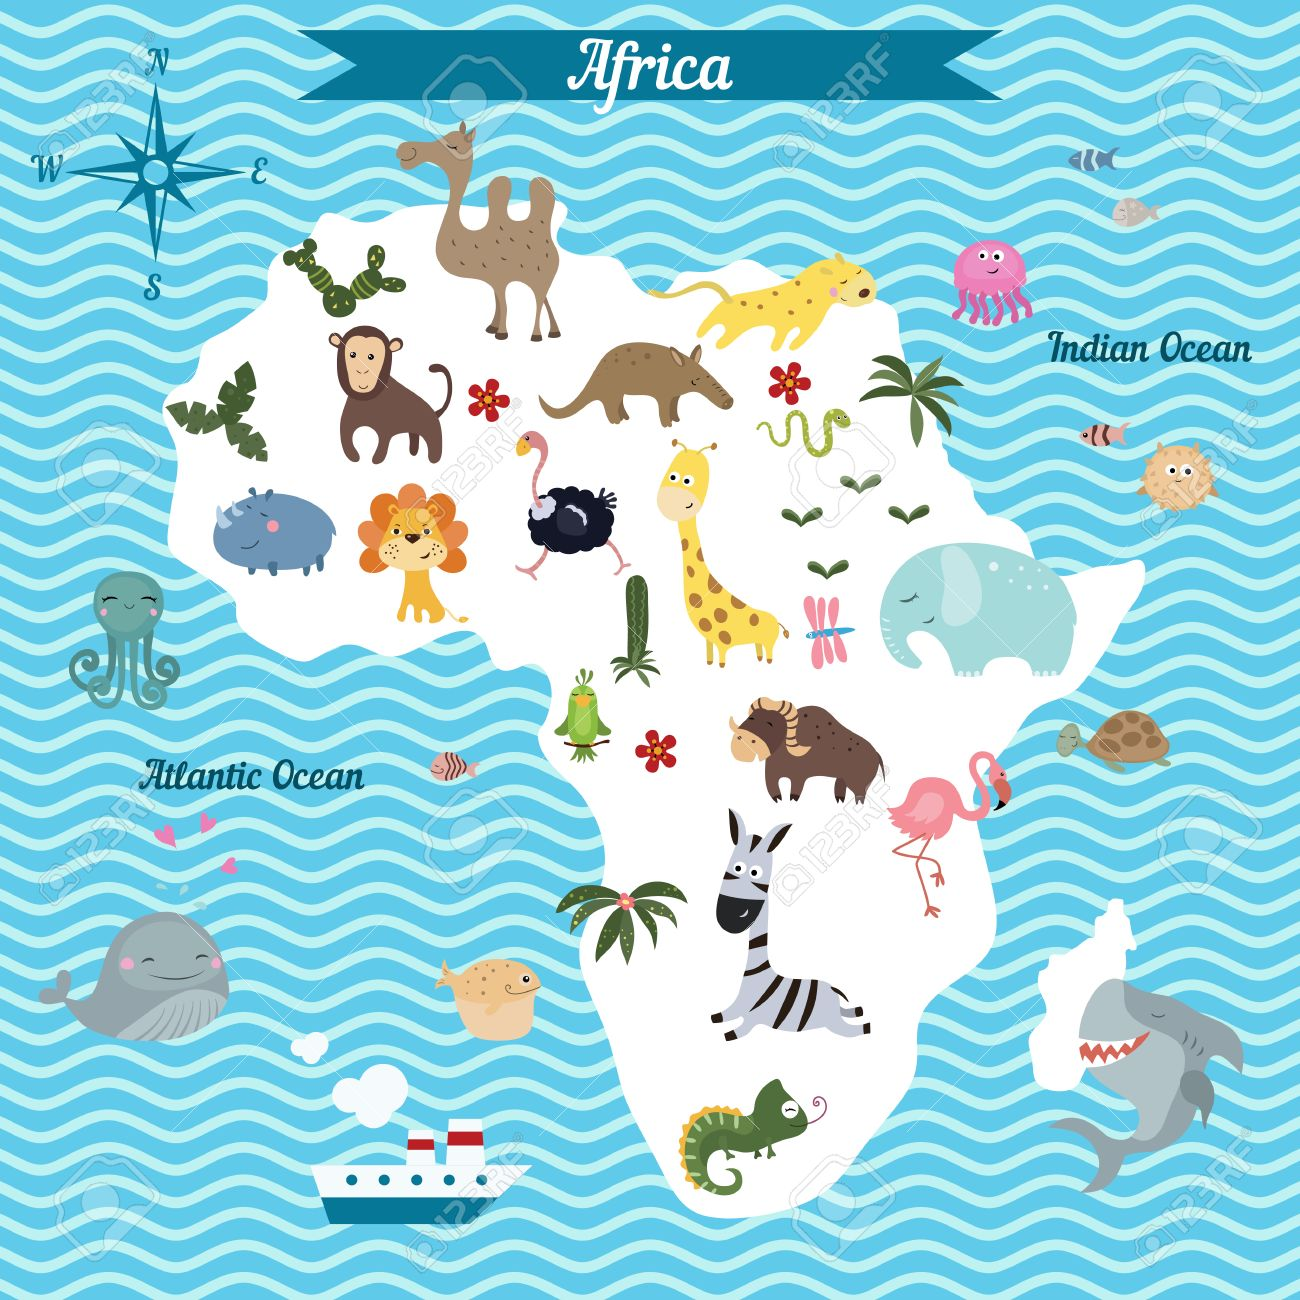 Cartoon Map Of Africa Continent With Different Animals Colorful - Map of africa for kids